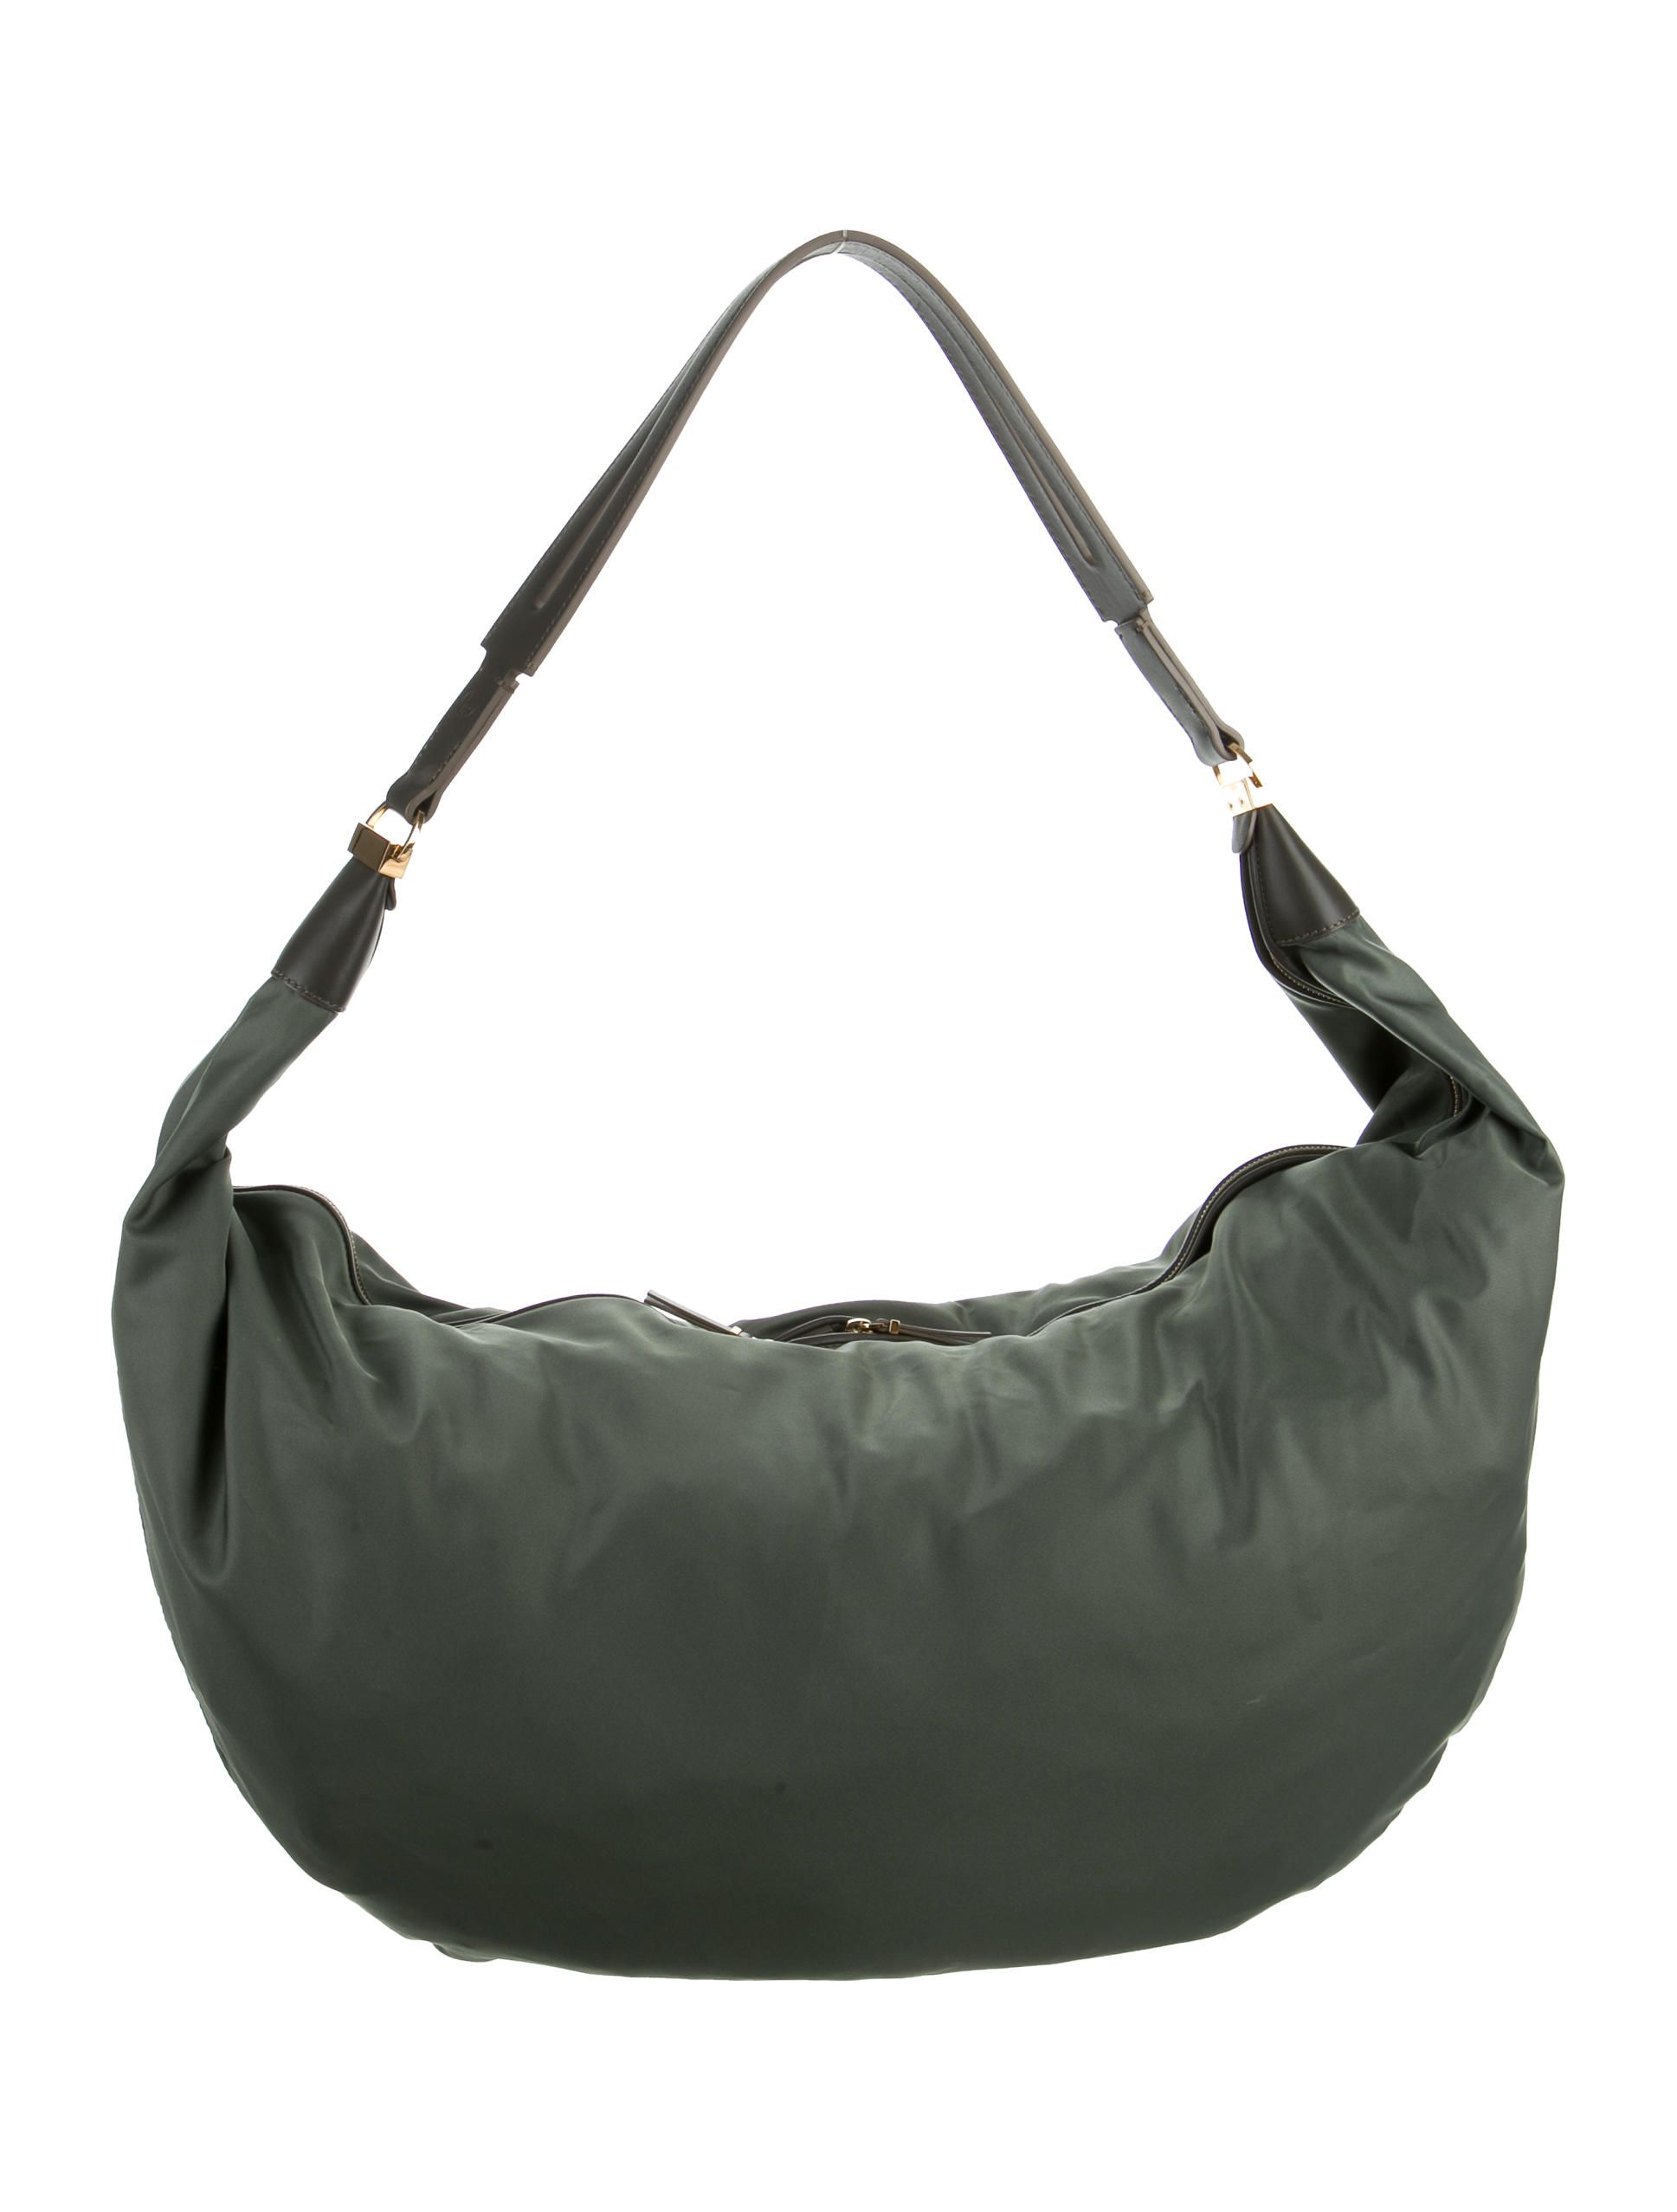 3c4e7c1386b4 Olive green nylon The Row Sling shoulder bag with gold-tone…